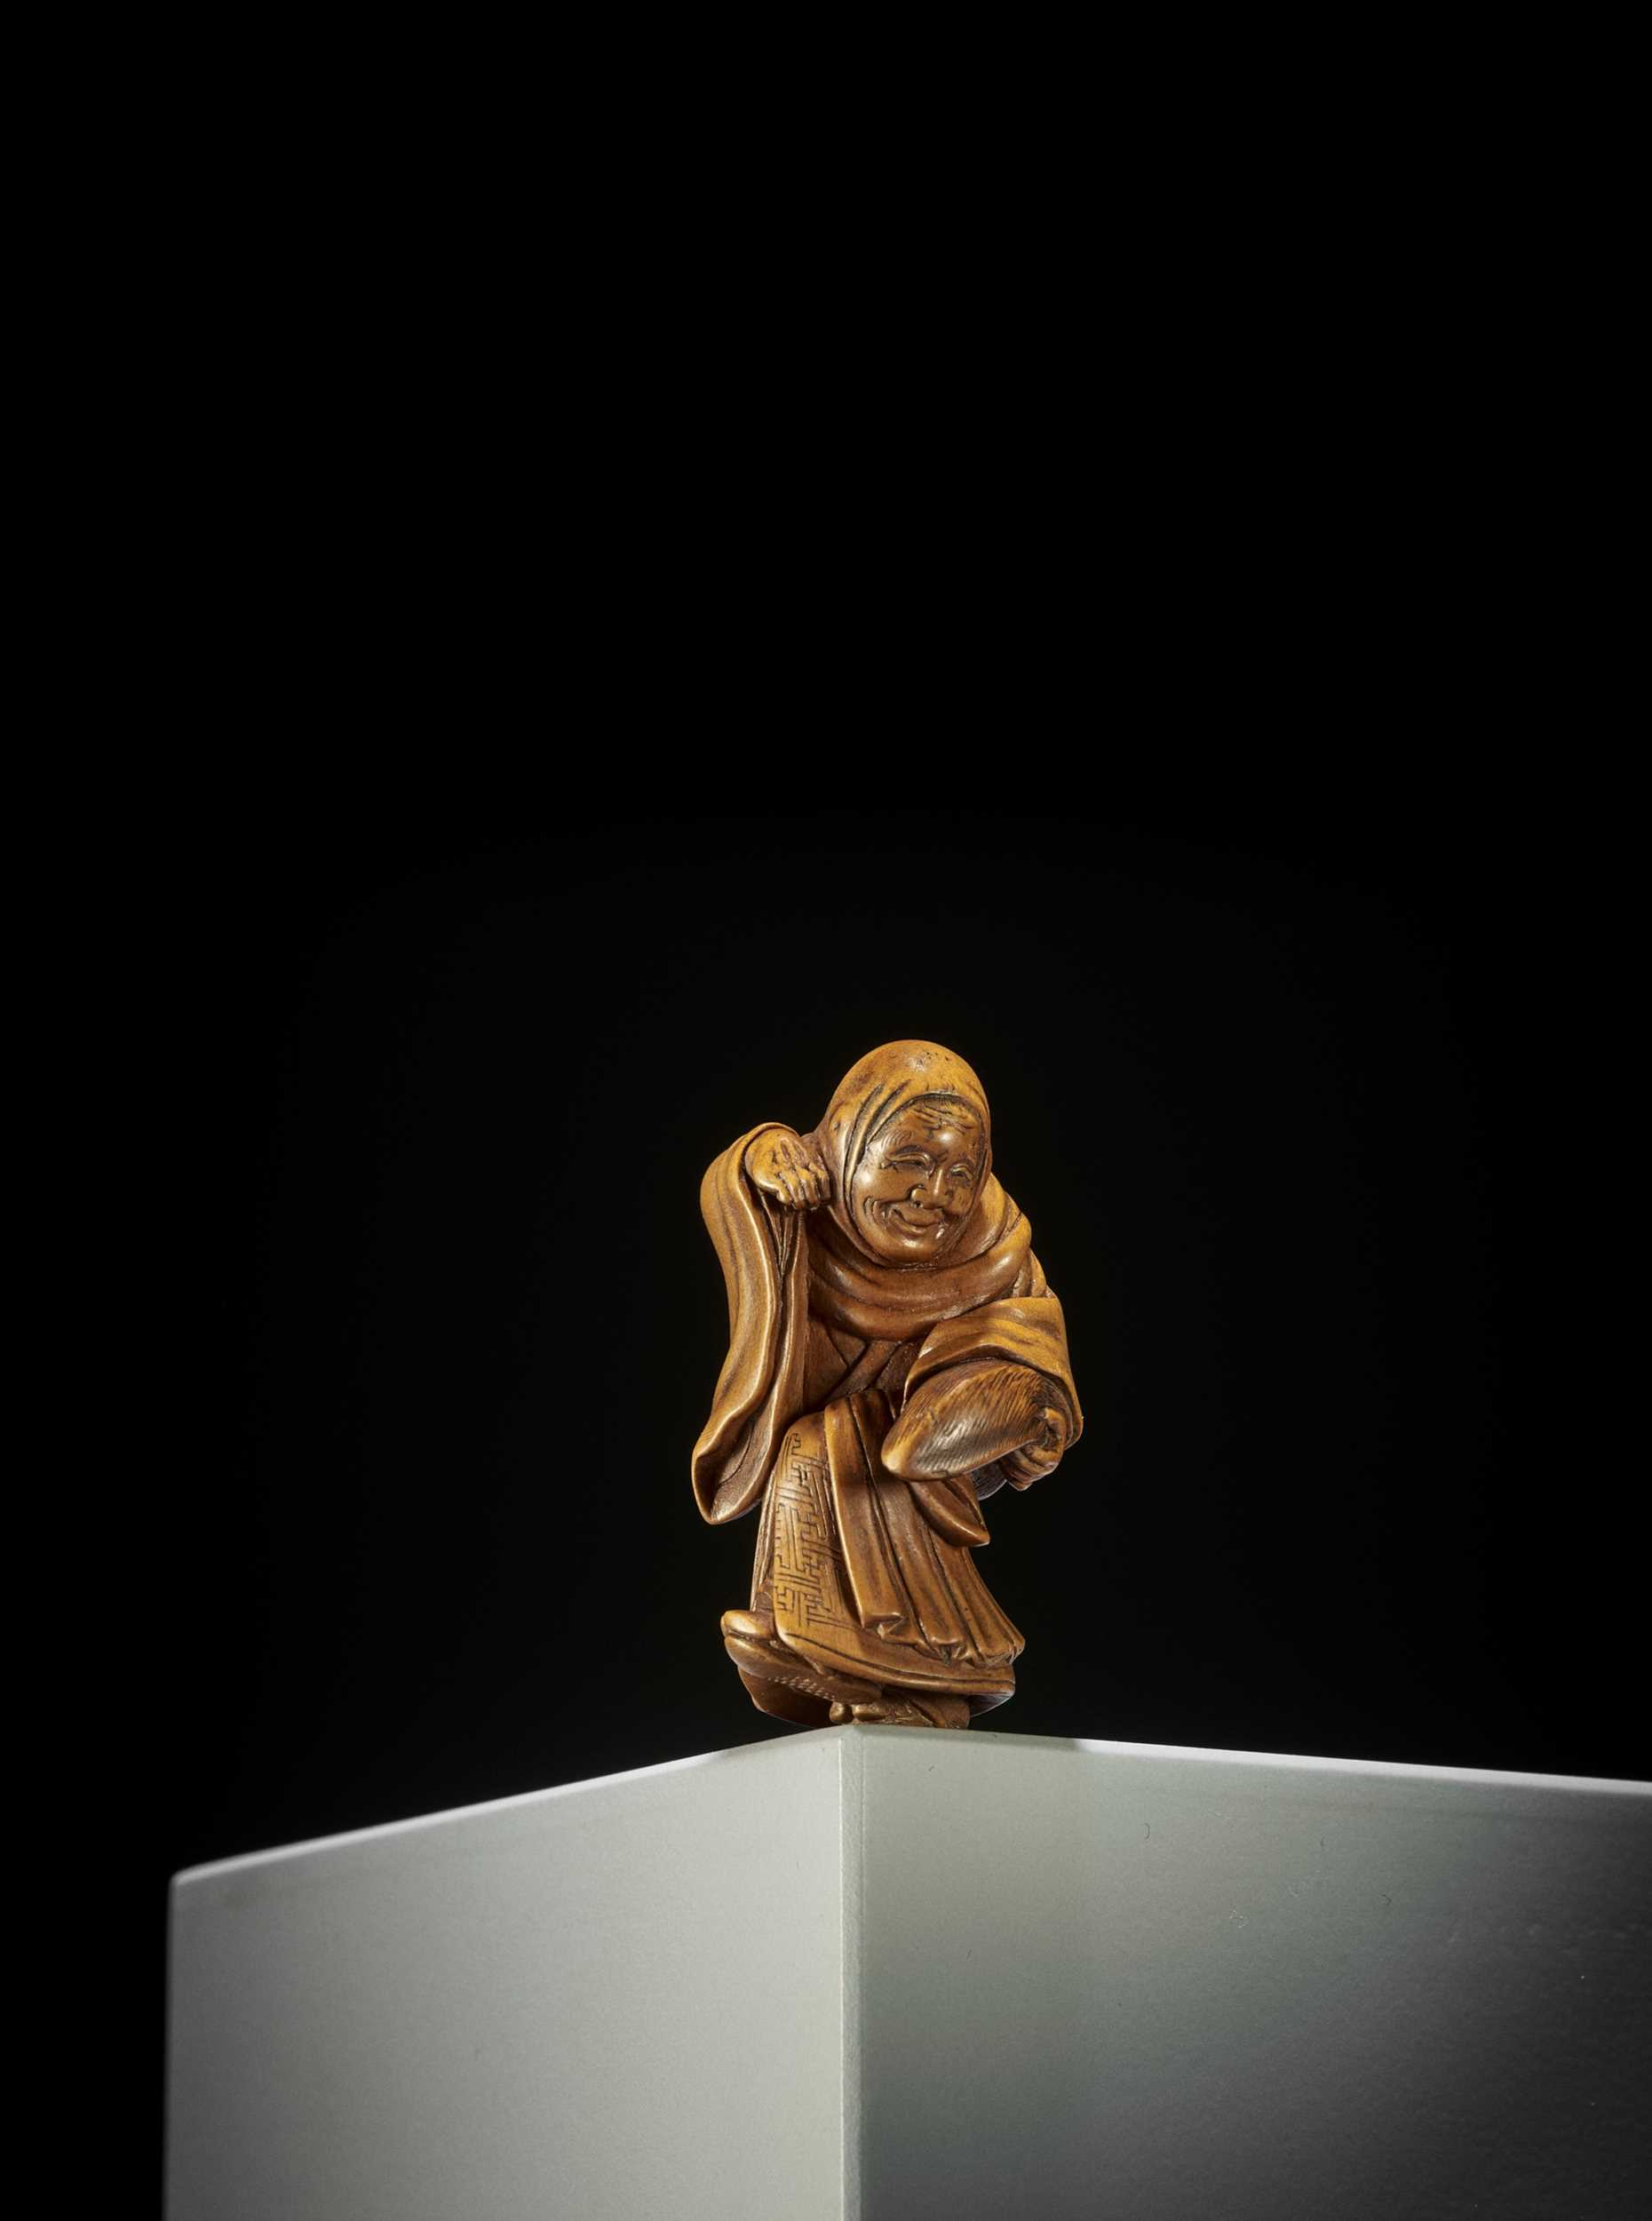 Lot 152 - MATSUDA SUKENAGA: A SUPERB WOOD NETSUKE OF A FOX PRIEST IN MID-TRANSFORMATION